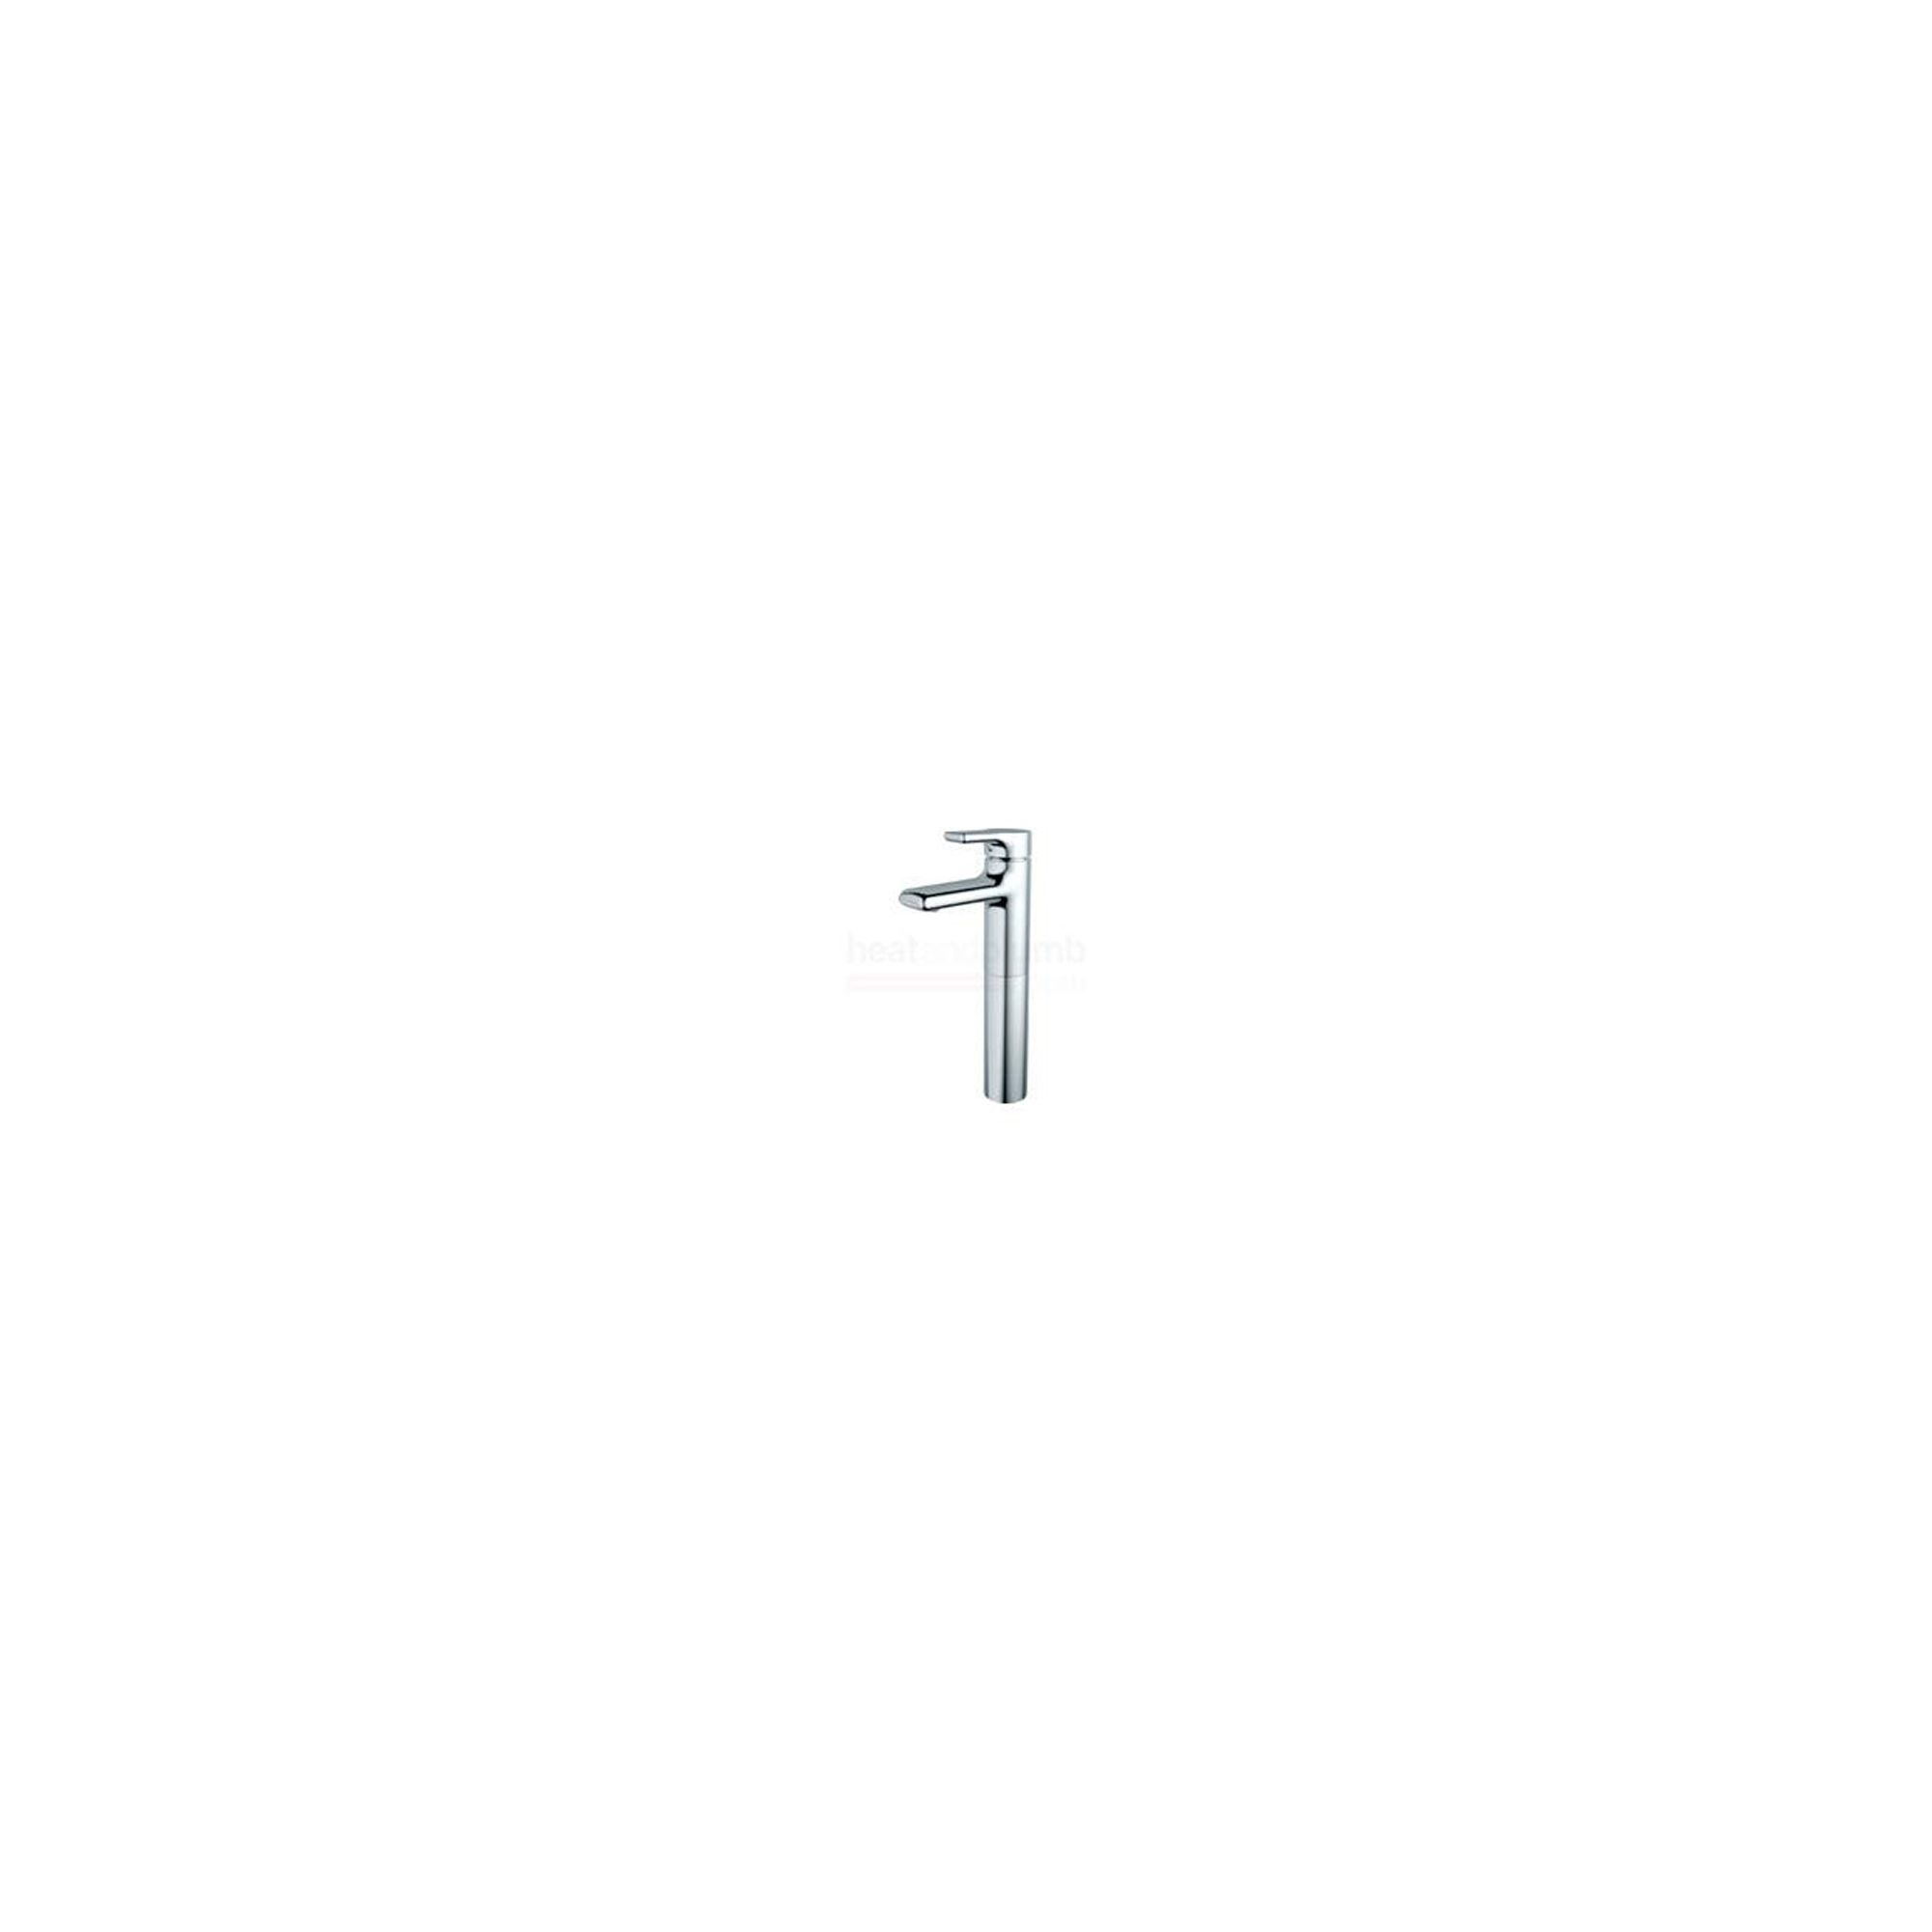 Ideal Standard Attitude Classic Single Lever Vessel Mono Basin Mixer Tap Chrome excluding Waste at Tesco Direct